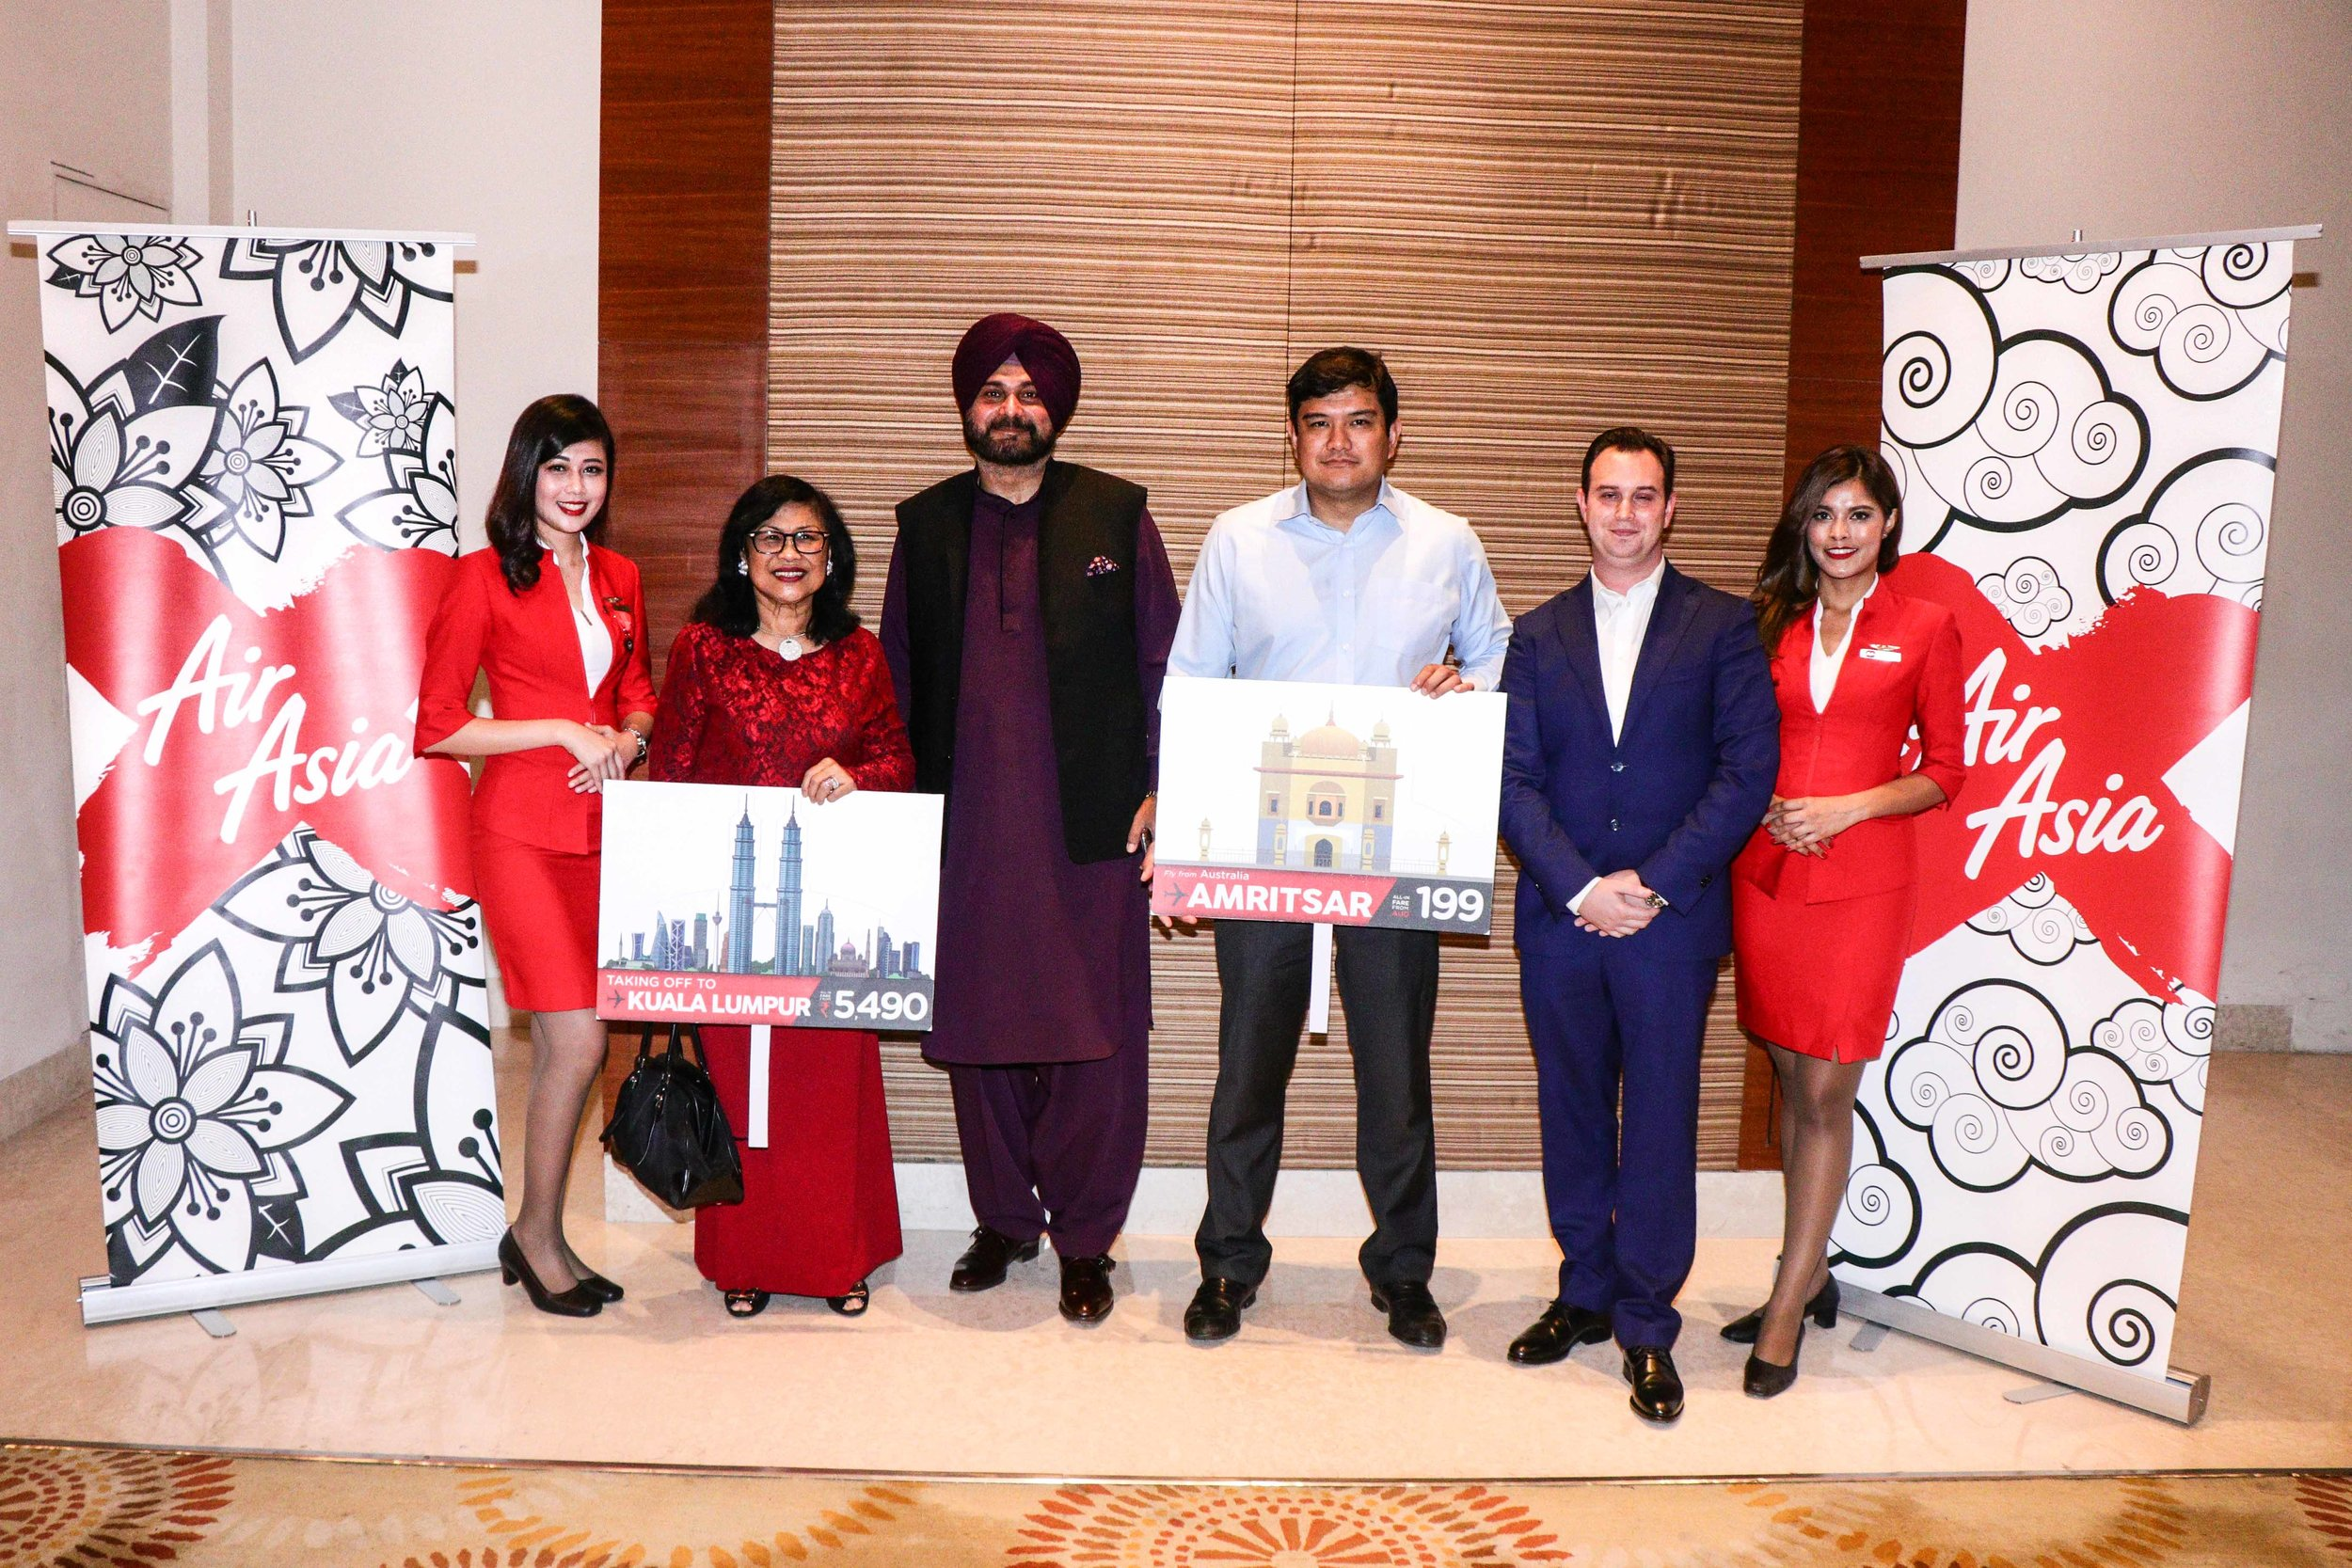 Photo Caption: (From left to right) AirAsia X chairman Tan Sri Rafidah Aziz (second from left)  poses with Punjab Tourism and Cultural  Affairs Minister Shri Navjot Singh Sidhu (third from left), AirAsia X CEO Benyamin Ismail and AirAsia X Group Head of Commercial Barry Klipp after a special press conference in Amritsar in conjunction with AirAsia's inaugural flight today. They are flanked by cabin crew of the inaugural service that took flight from Kuala Lumpur to the holy city on yesterday (16 August 2018).